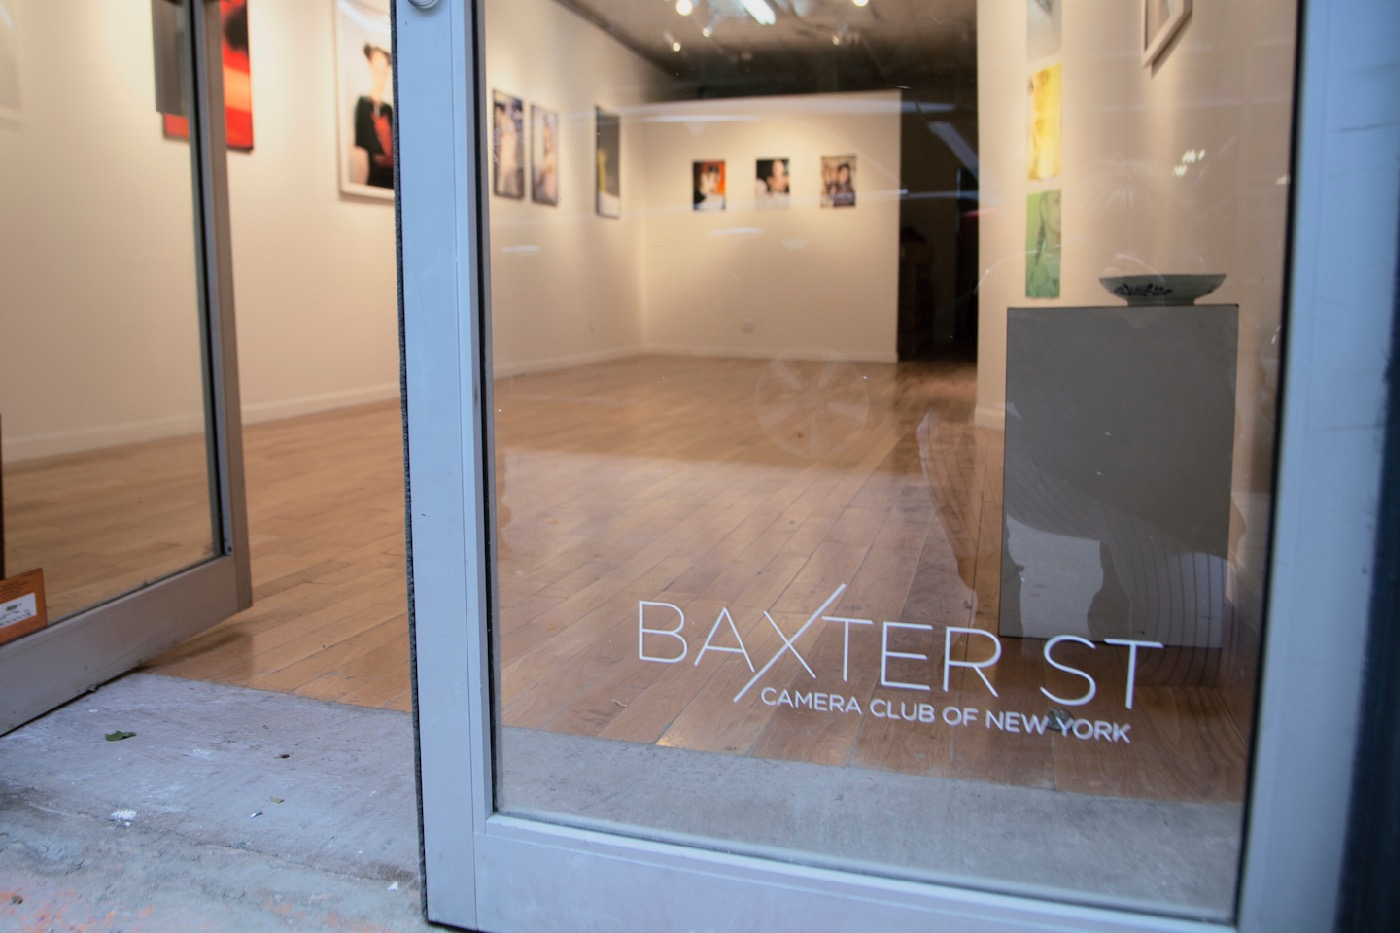 The front door of Baxter Street Camera Club of New York (All photos courtesy of Baxter St CCNY)